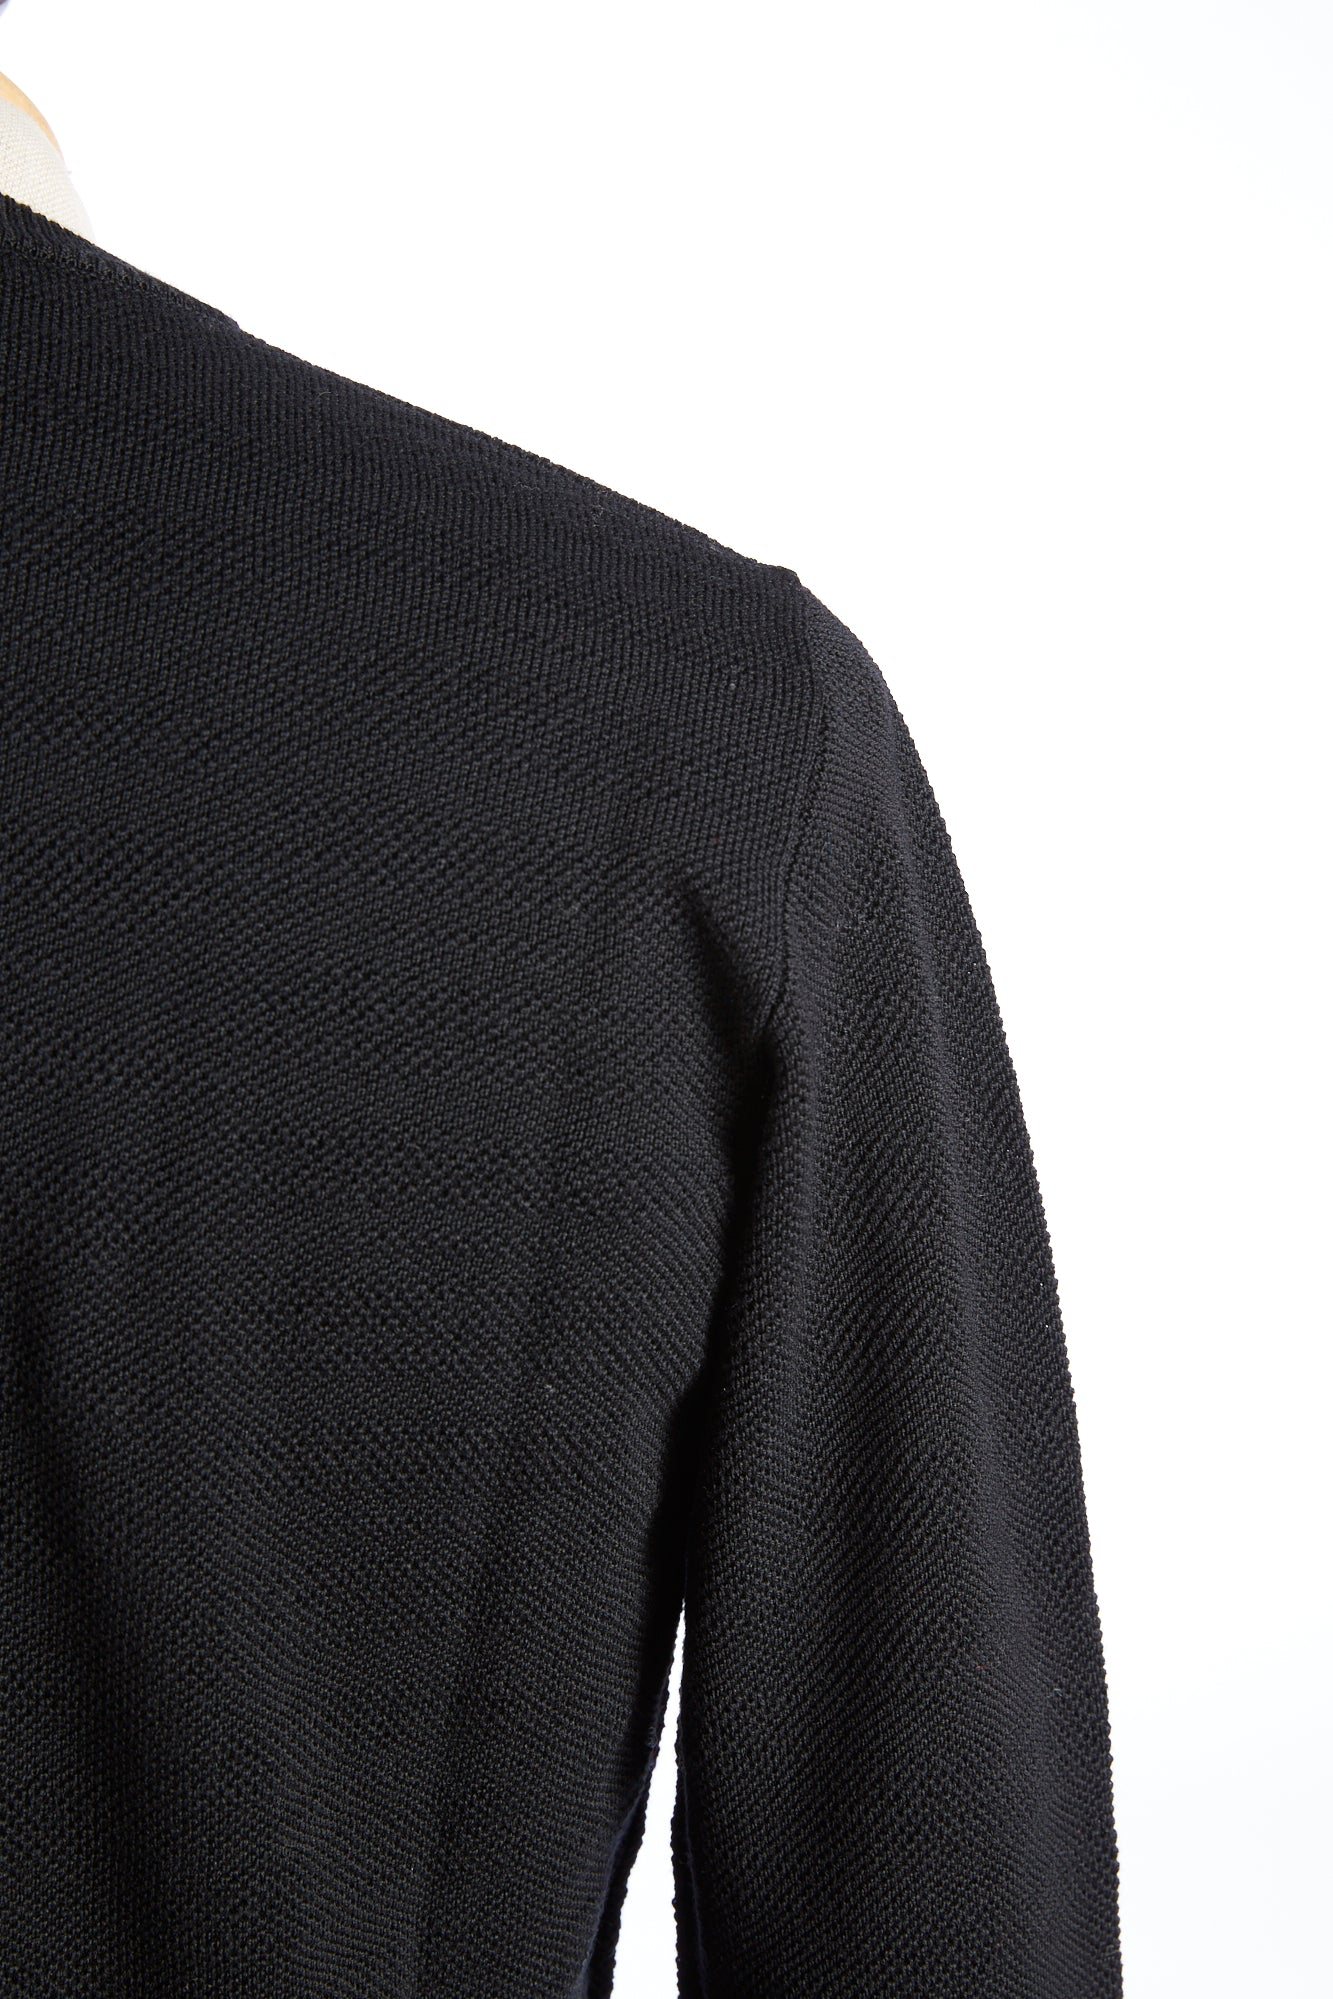 Roberto Collina Black Textured Stripe Sweater Shoulder